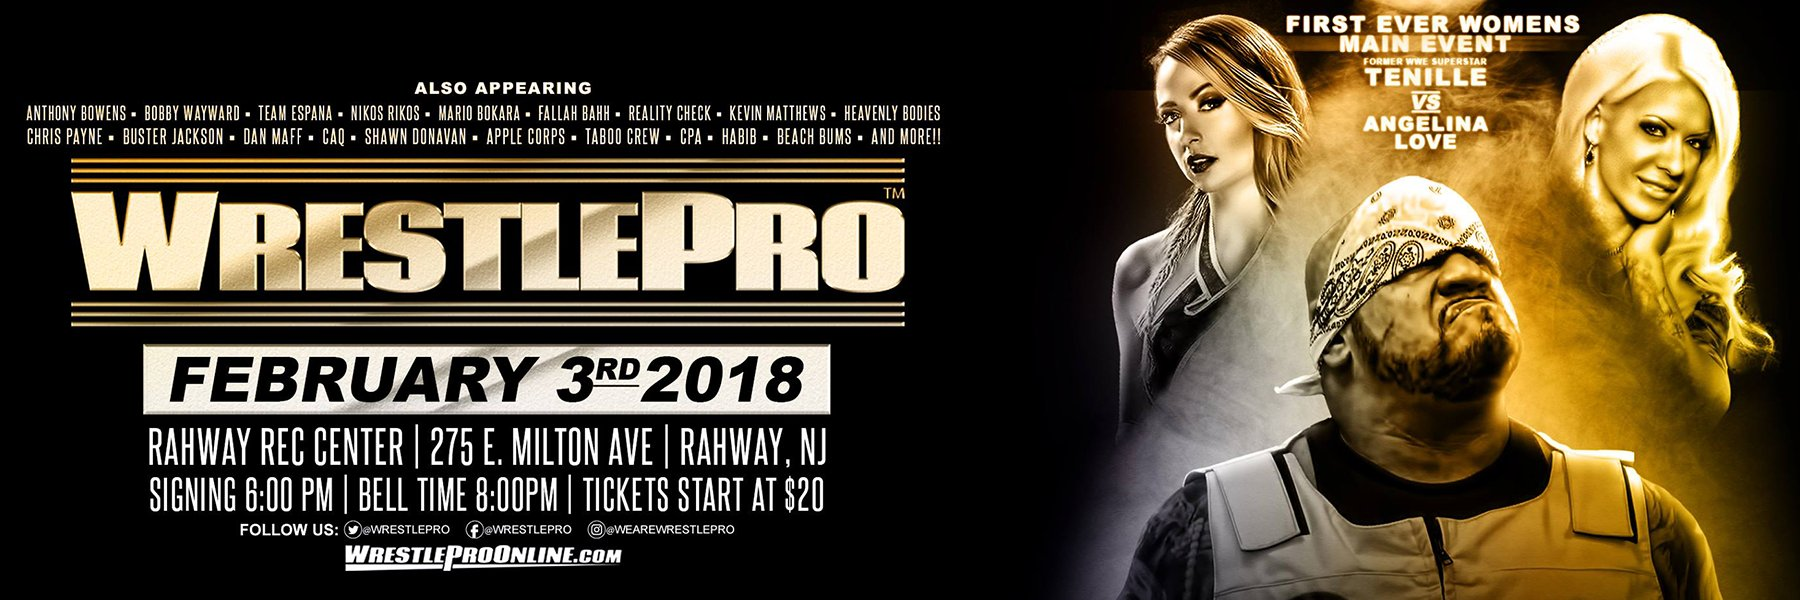 WrestlePro teams up w/ Impact Wrestling! See Tenille Dashwood (fka Emma)